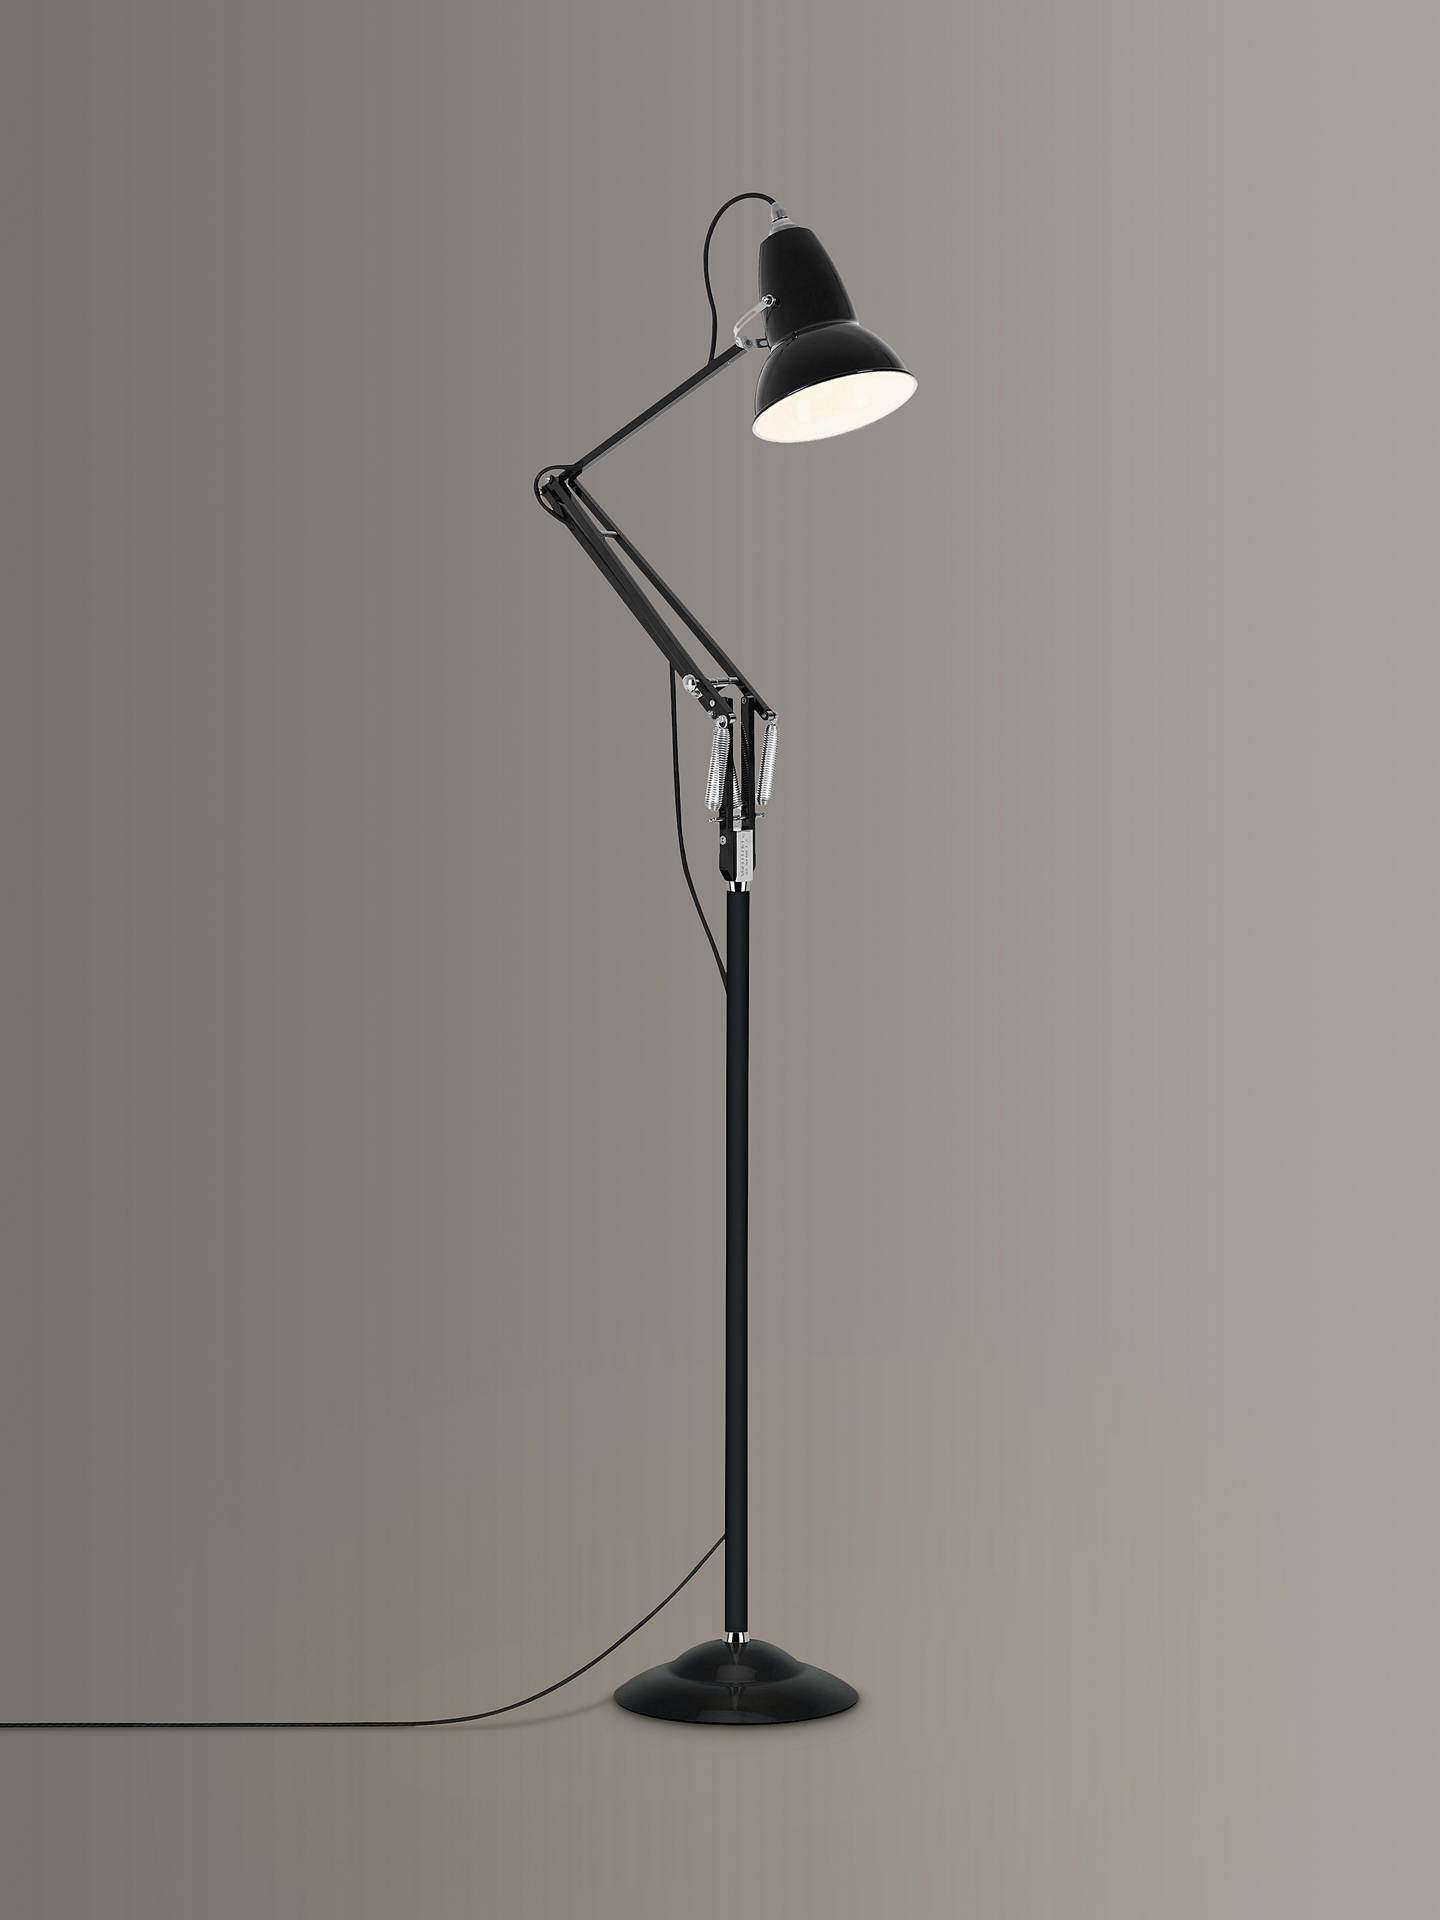 Buy Anglepoise Original 1227 Floor Lamp, Black Online at johnlewis.com